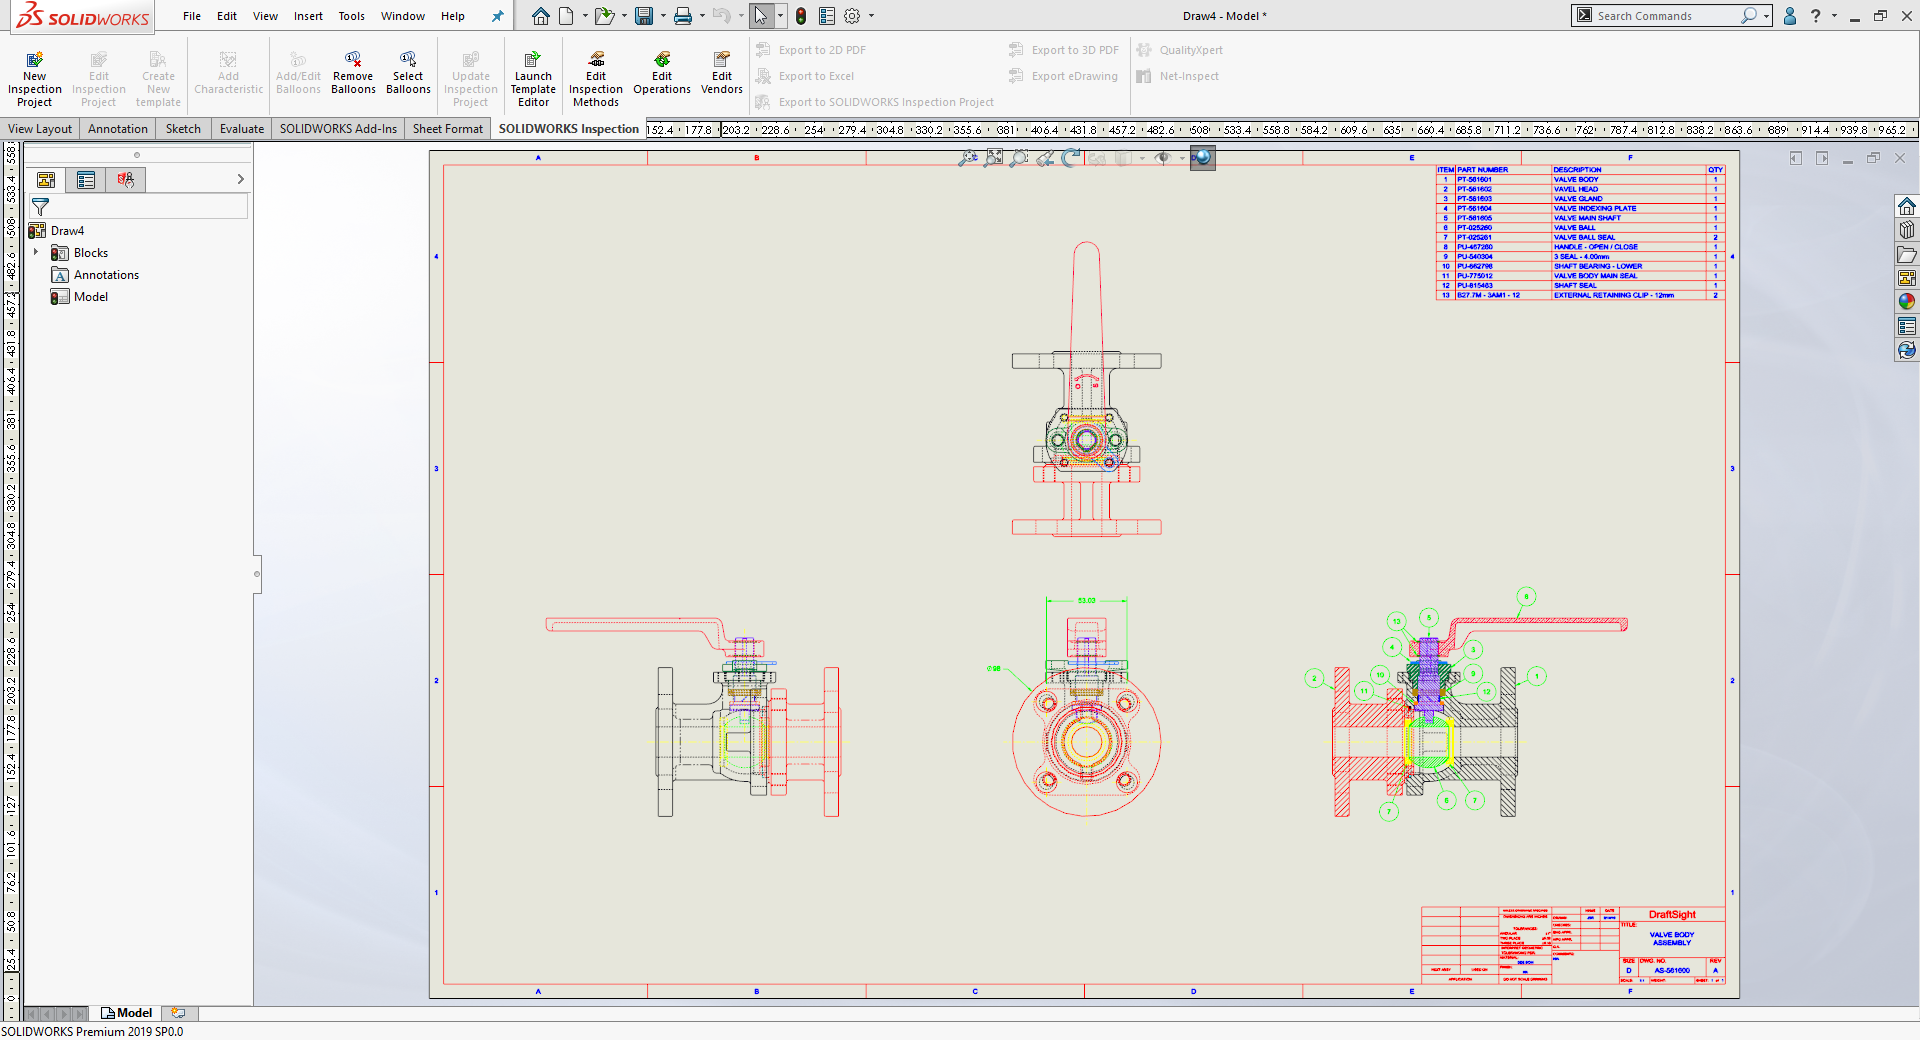 Migrating from AutoCAD to SOLIDWORKS